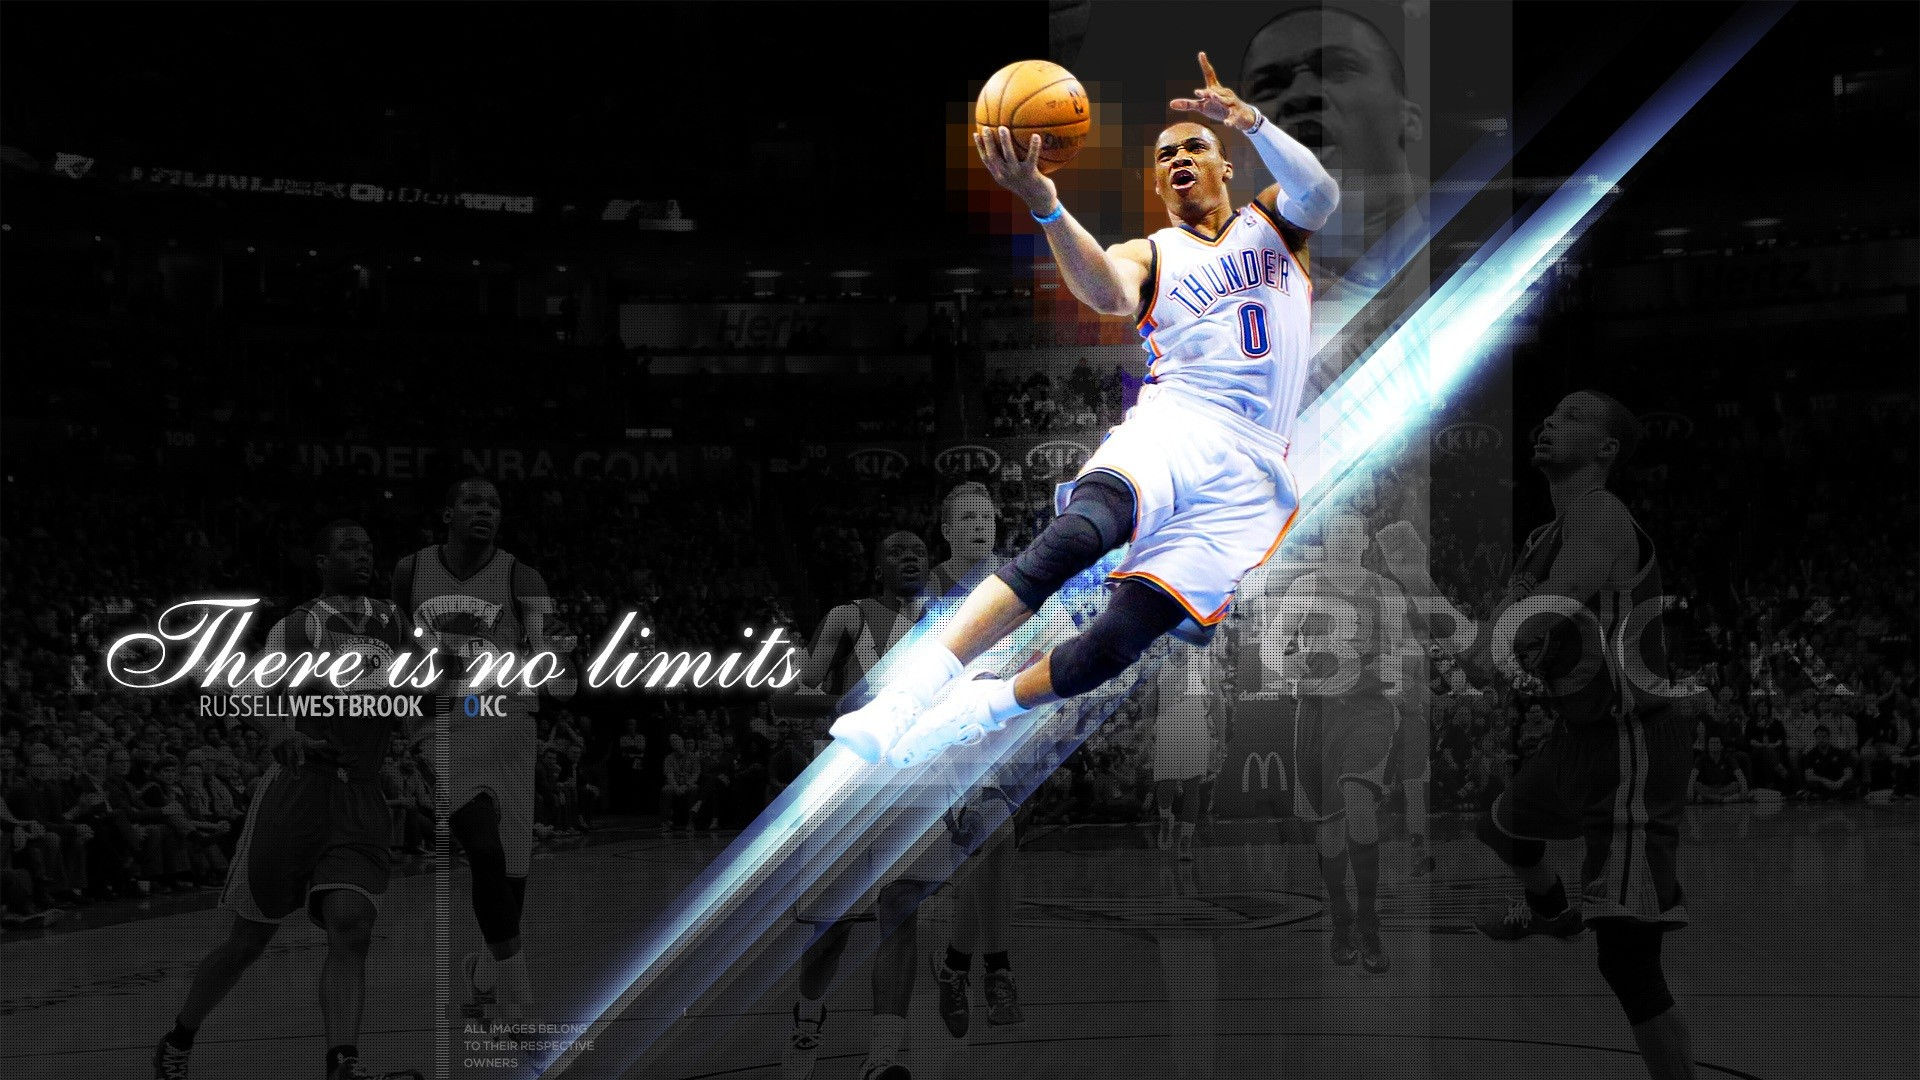 Russell Westbrook Dunking Wallpaper Hd 73 Images